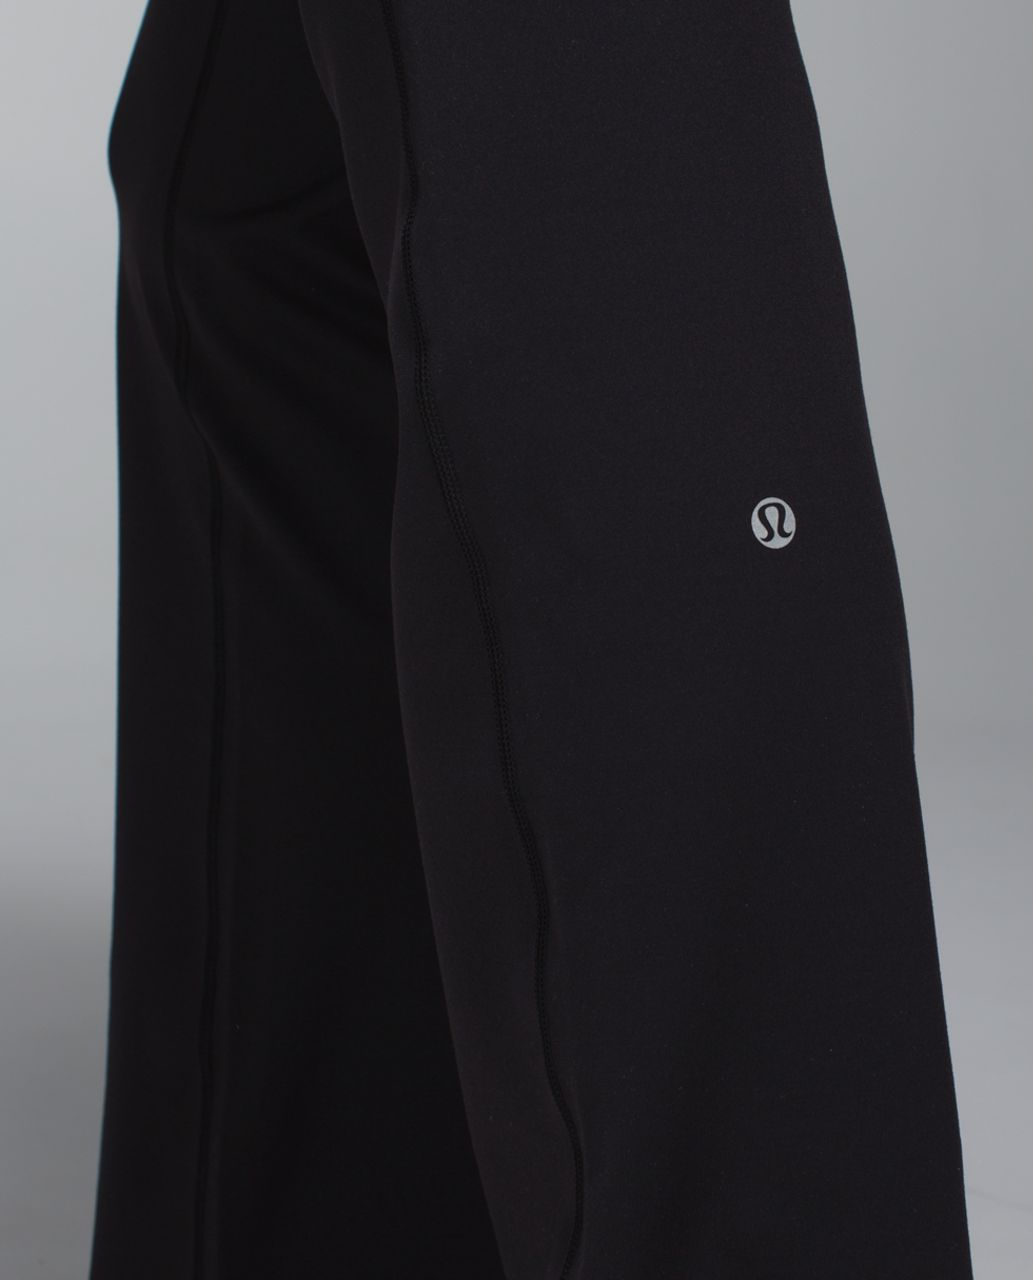 Lululemon Astro Pant *Full-On Luon (Regular) - Black / Toothpaste / Heathered Slate